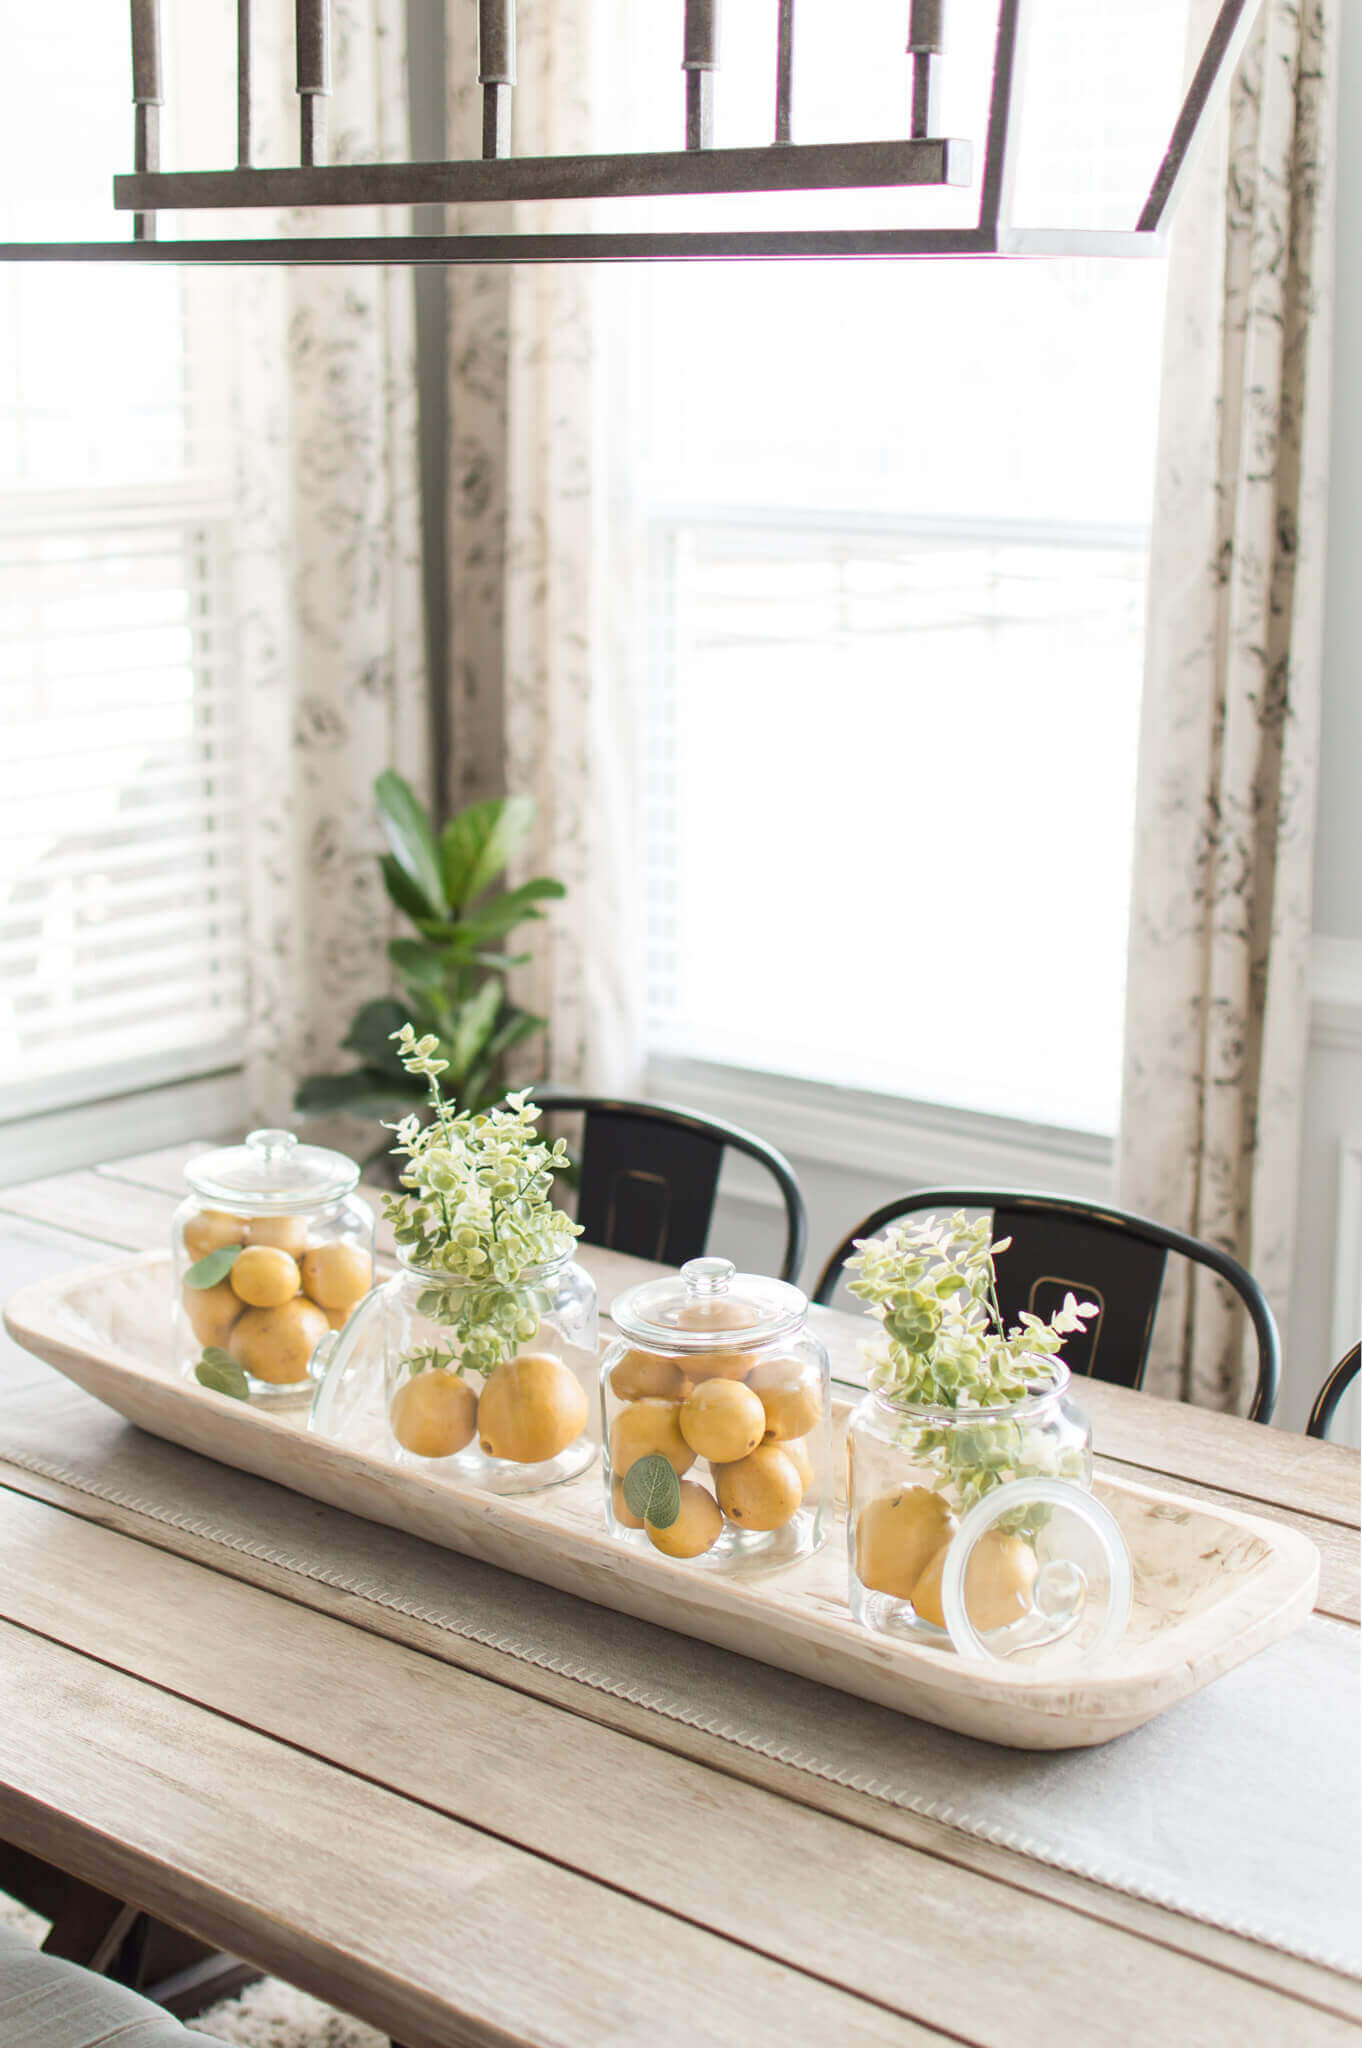 Lemon Jar Centerpiece Idea for Spring / A Hosting Home Blog